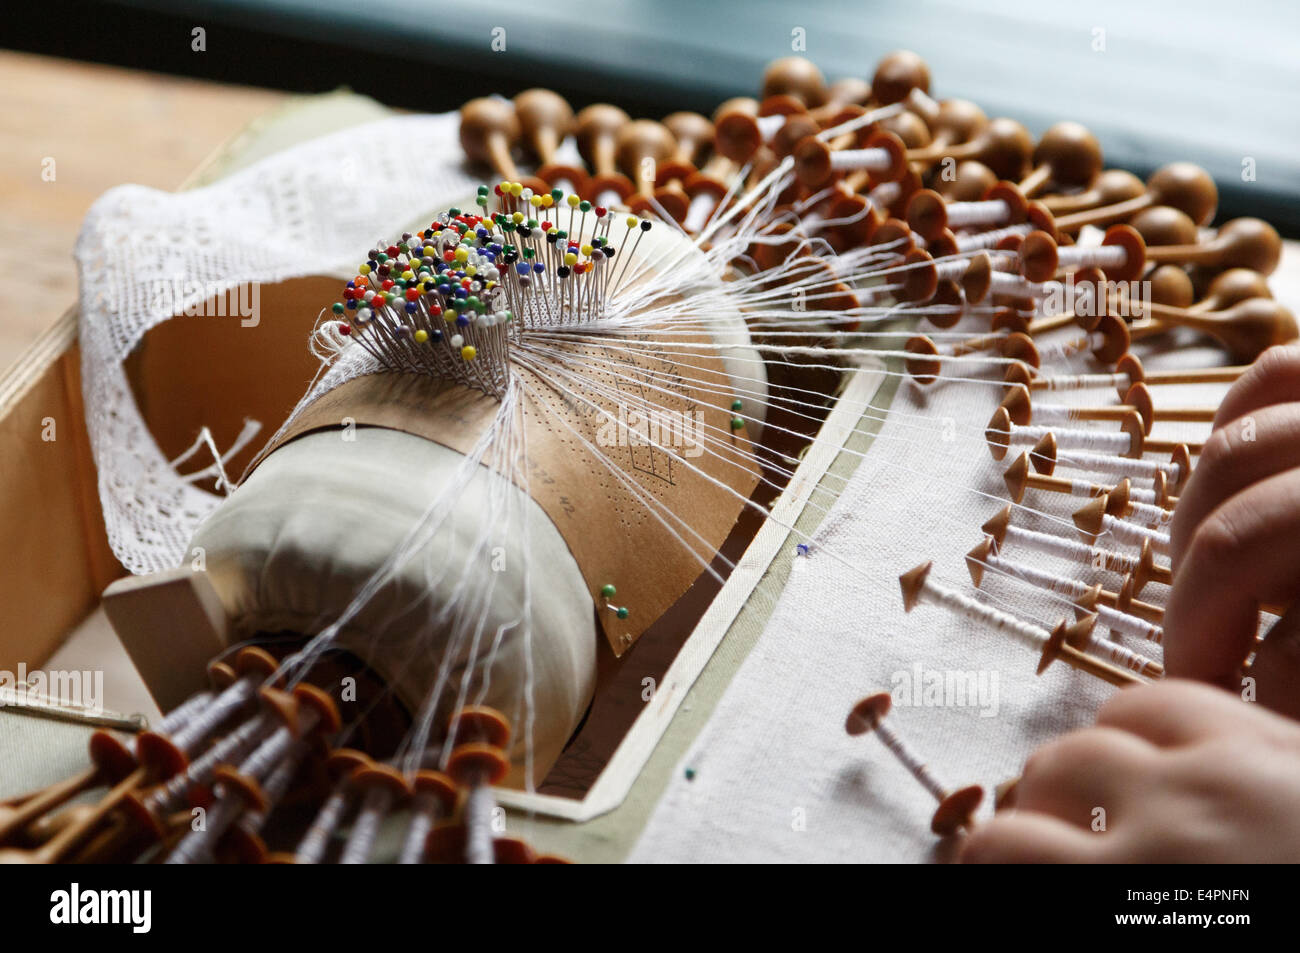 Bobbin lace being produced with the traditional method by hand with bobbins and a pillow with pins guiding the pattern. - Stock Image